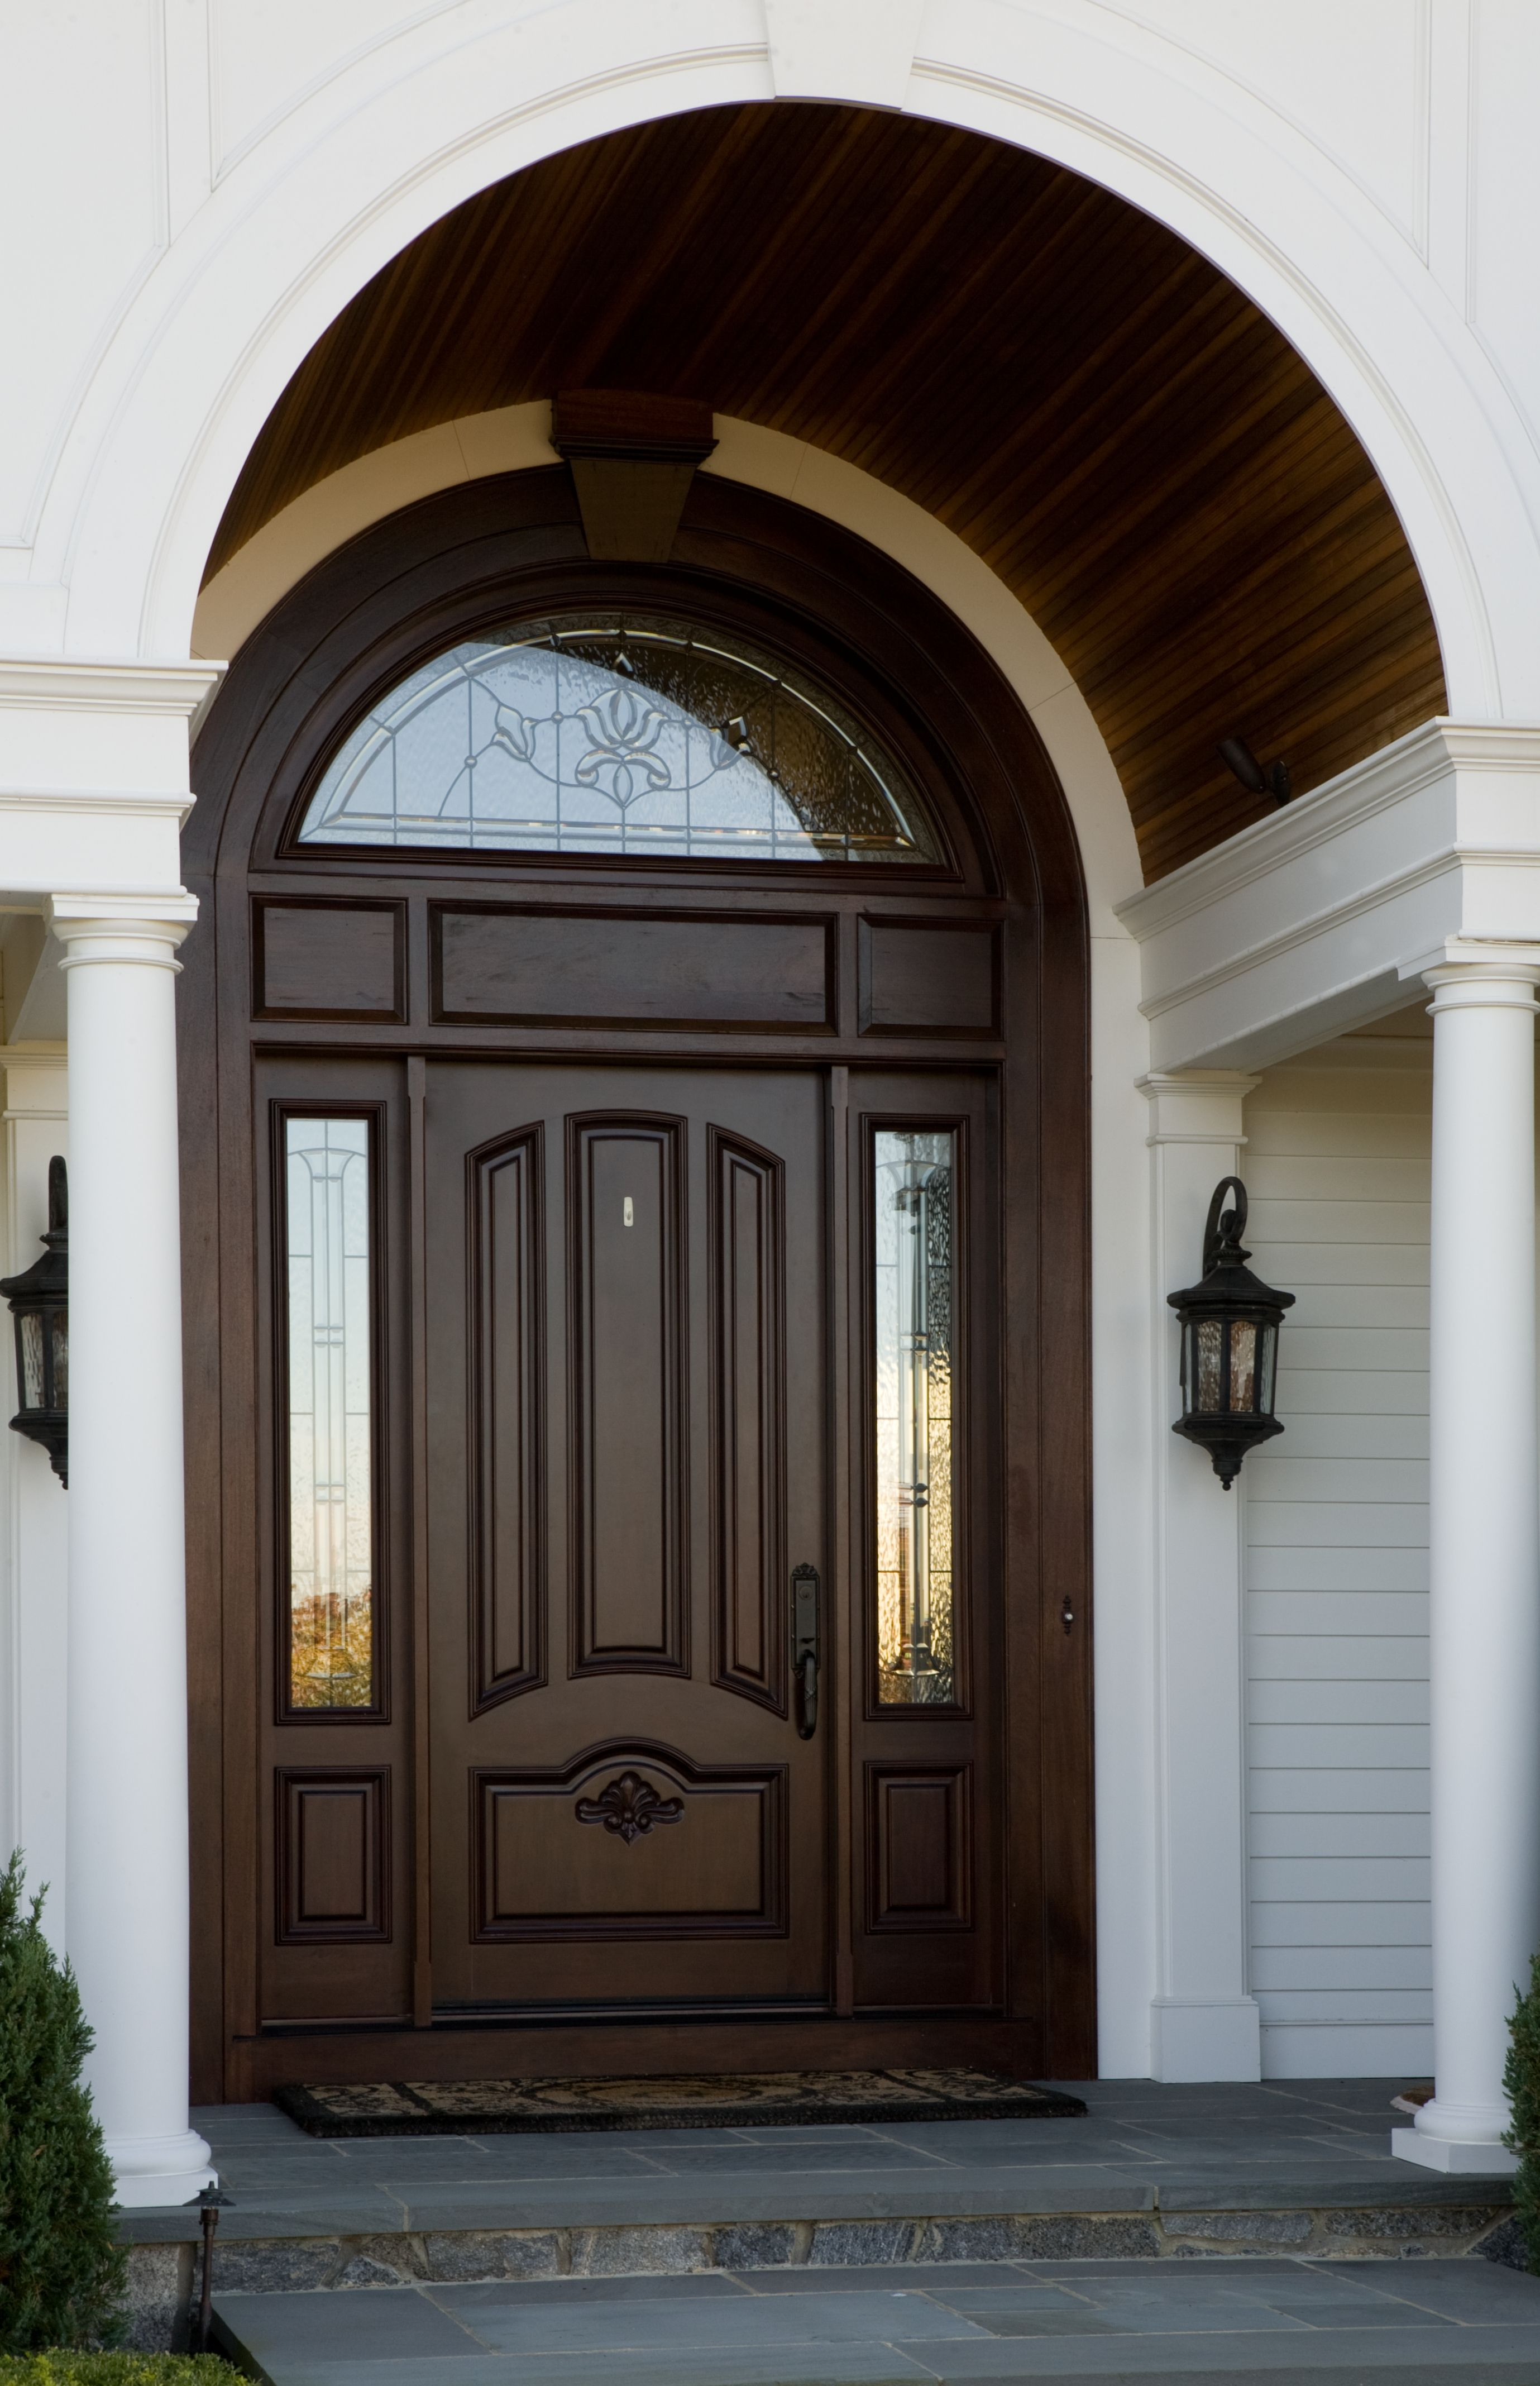 A Beautiful Wooden Arch Accentuates The Curved Window